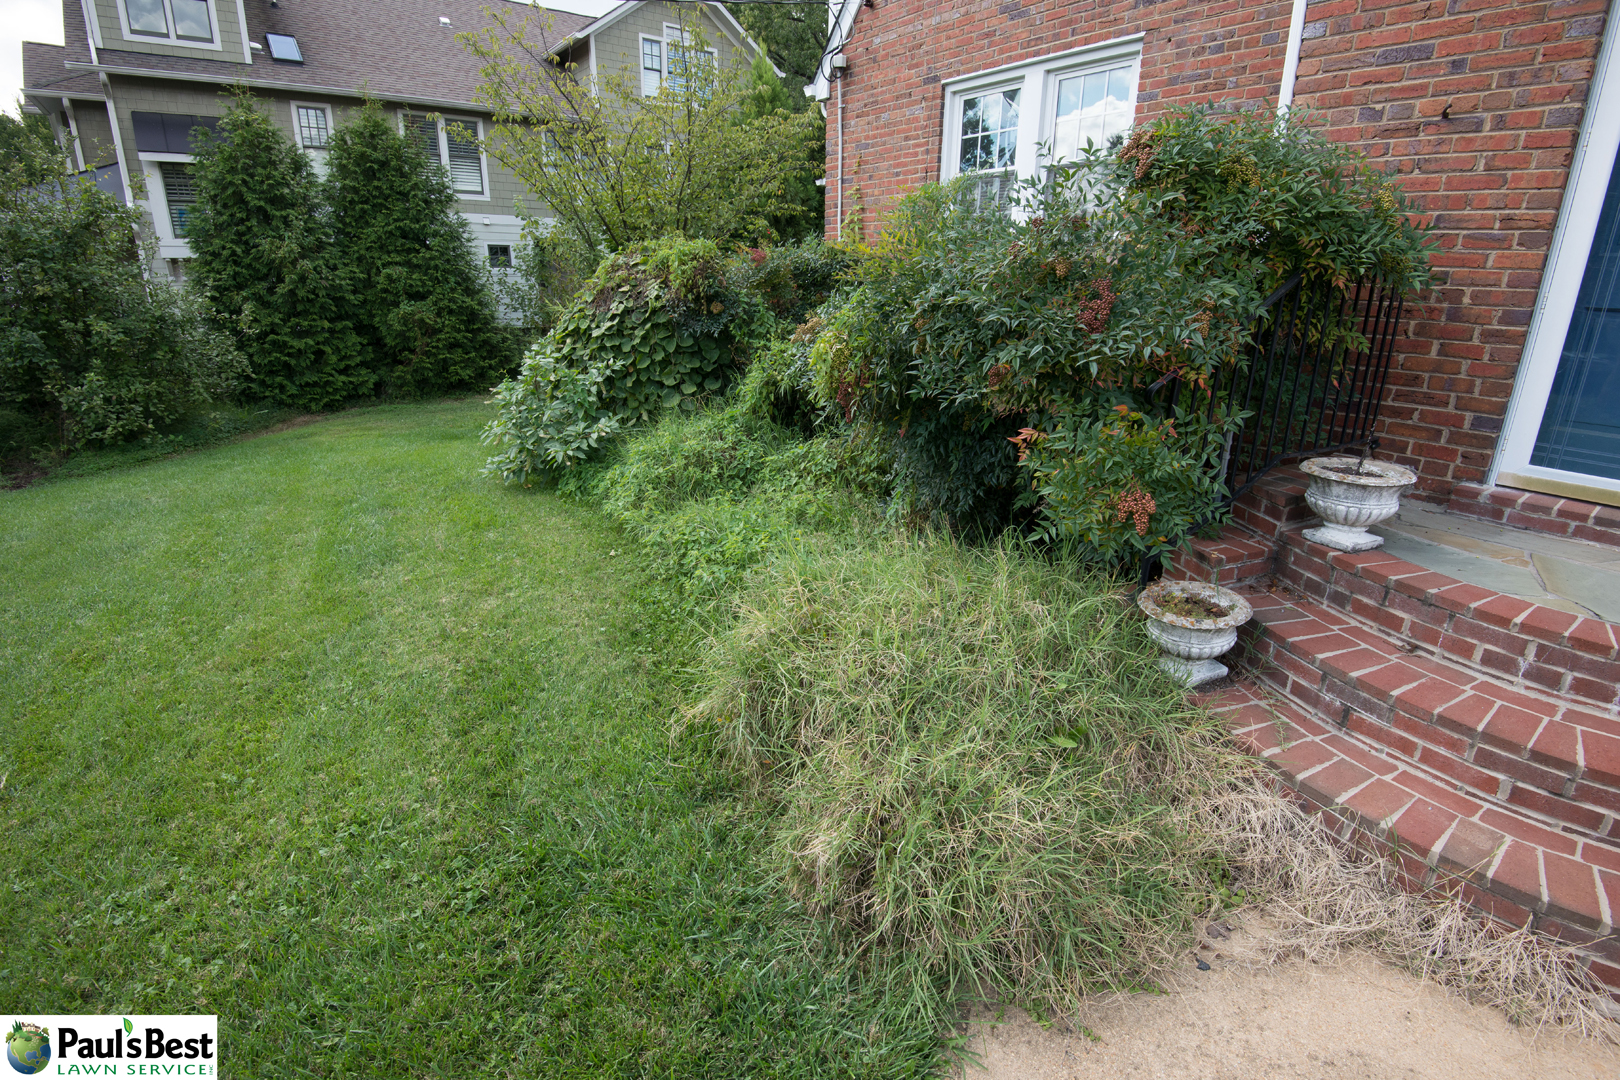 https://paulsbestlawn.com/pbls-img/portfolio/routine-property-maintenance/before-and-after/web-ready/large/BAPM1-p-After-General-Cleanup-Edge-Beds-and-Mulching-in-Arlington-VA.jpg